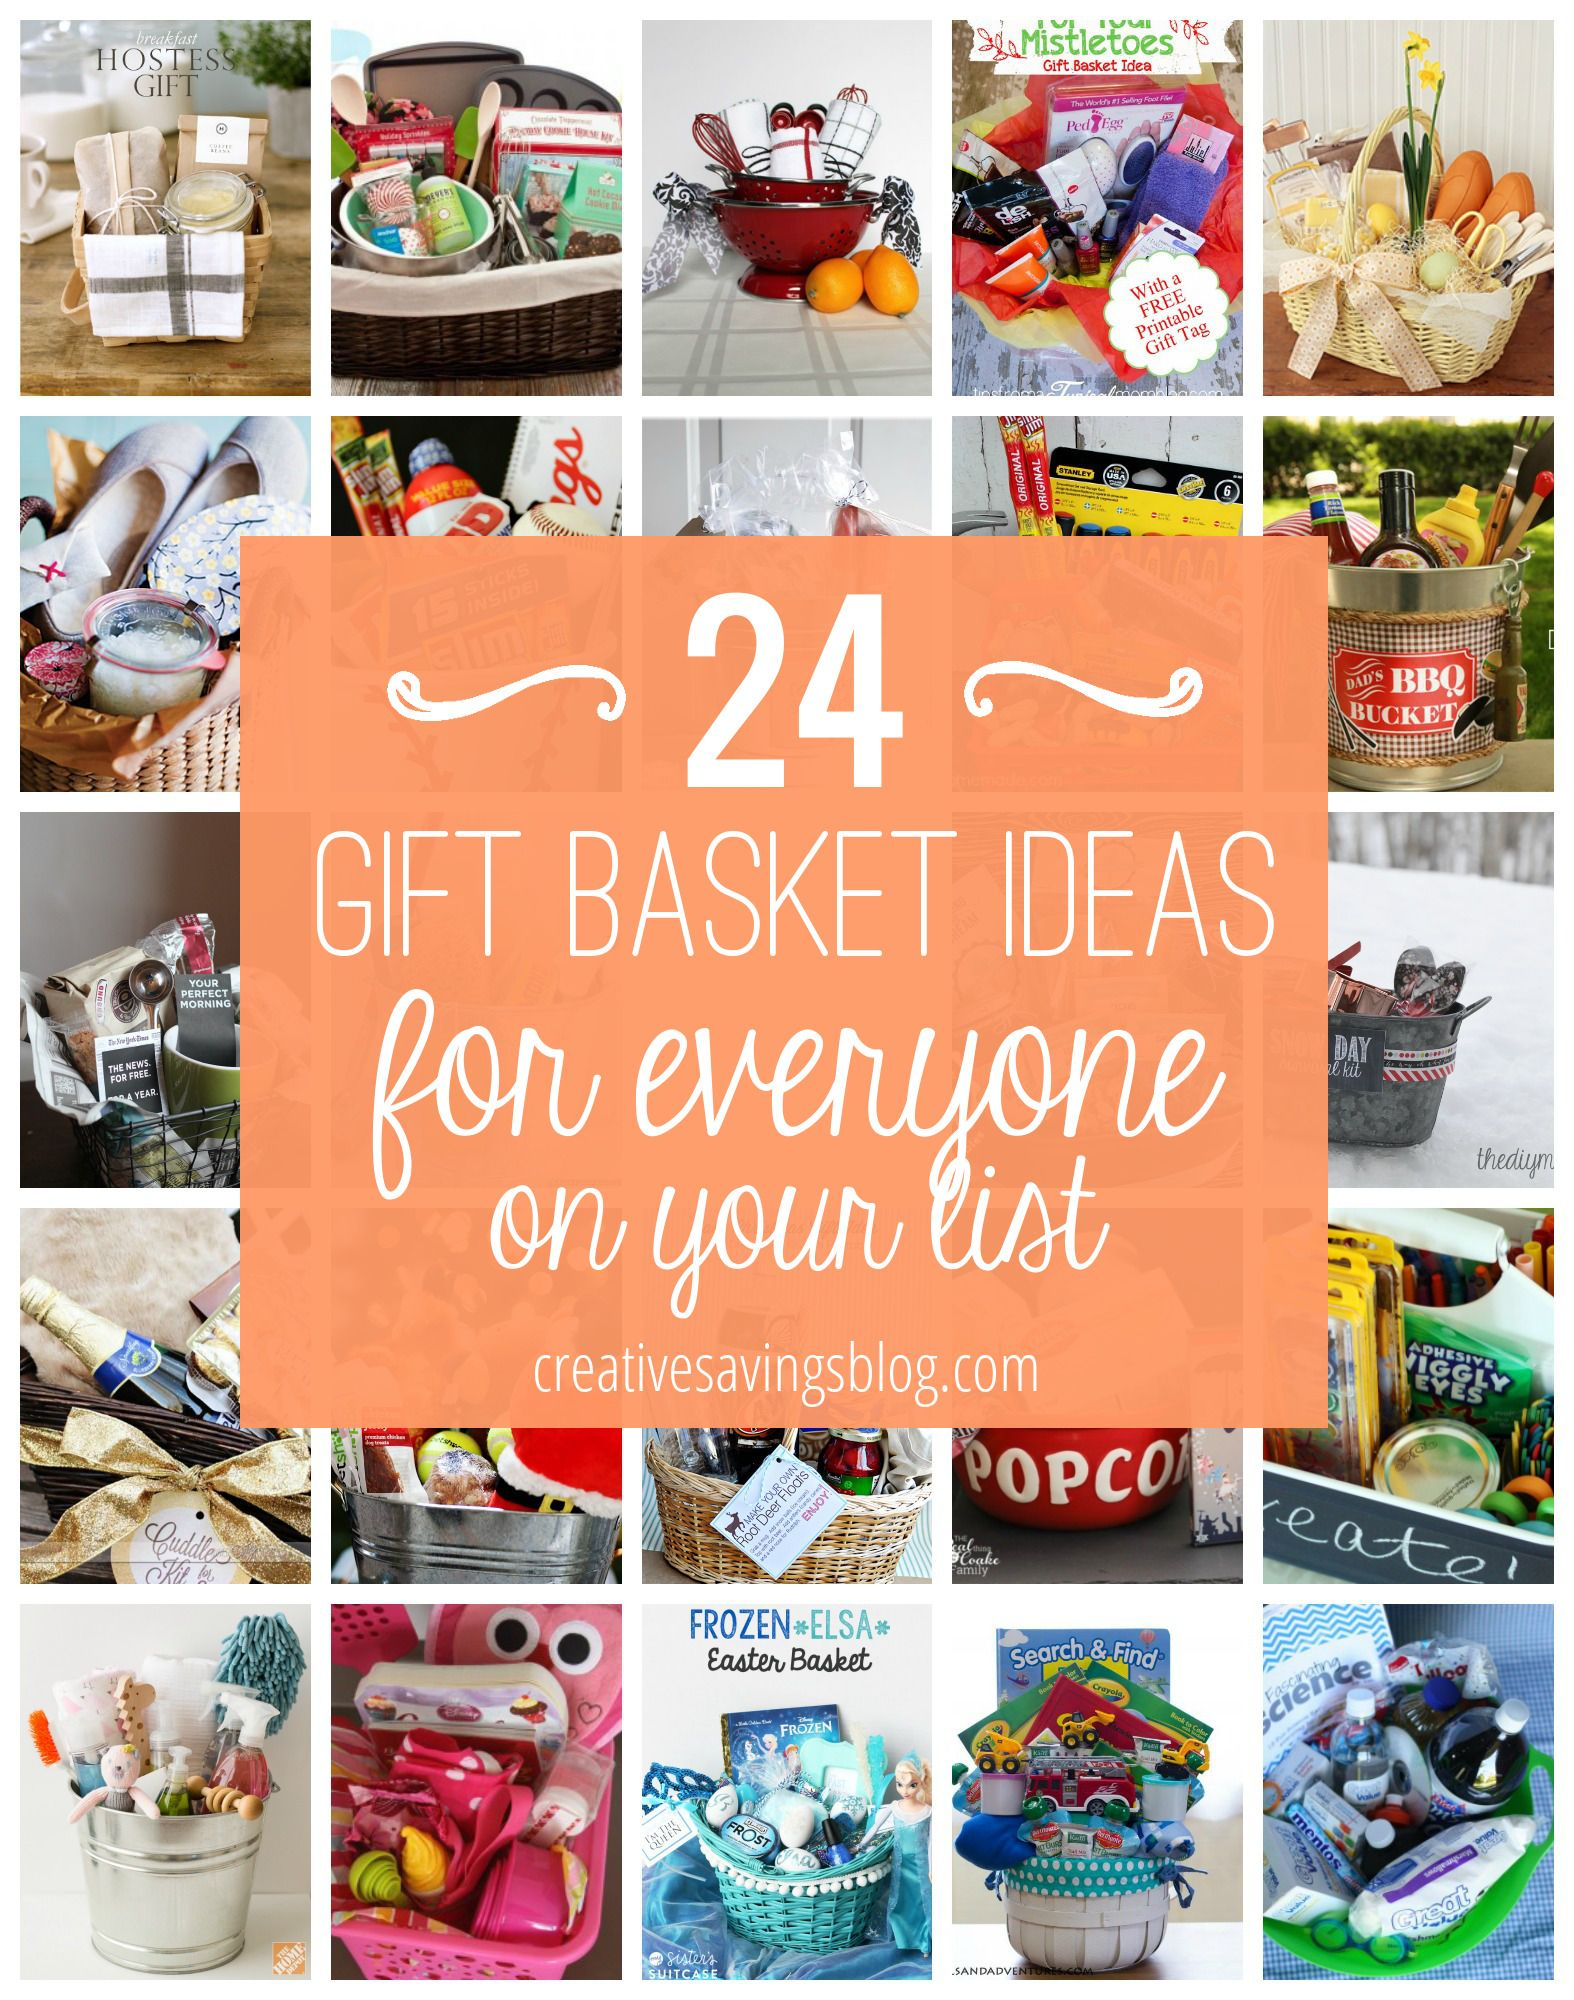 Diy gift basket ideas for everyone on your list basket ideas diy gift basket ideas for everyone on your list negle Images